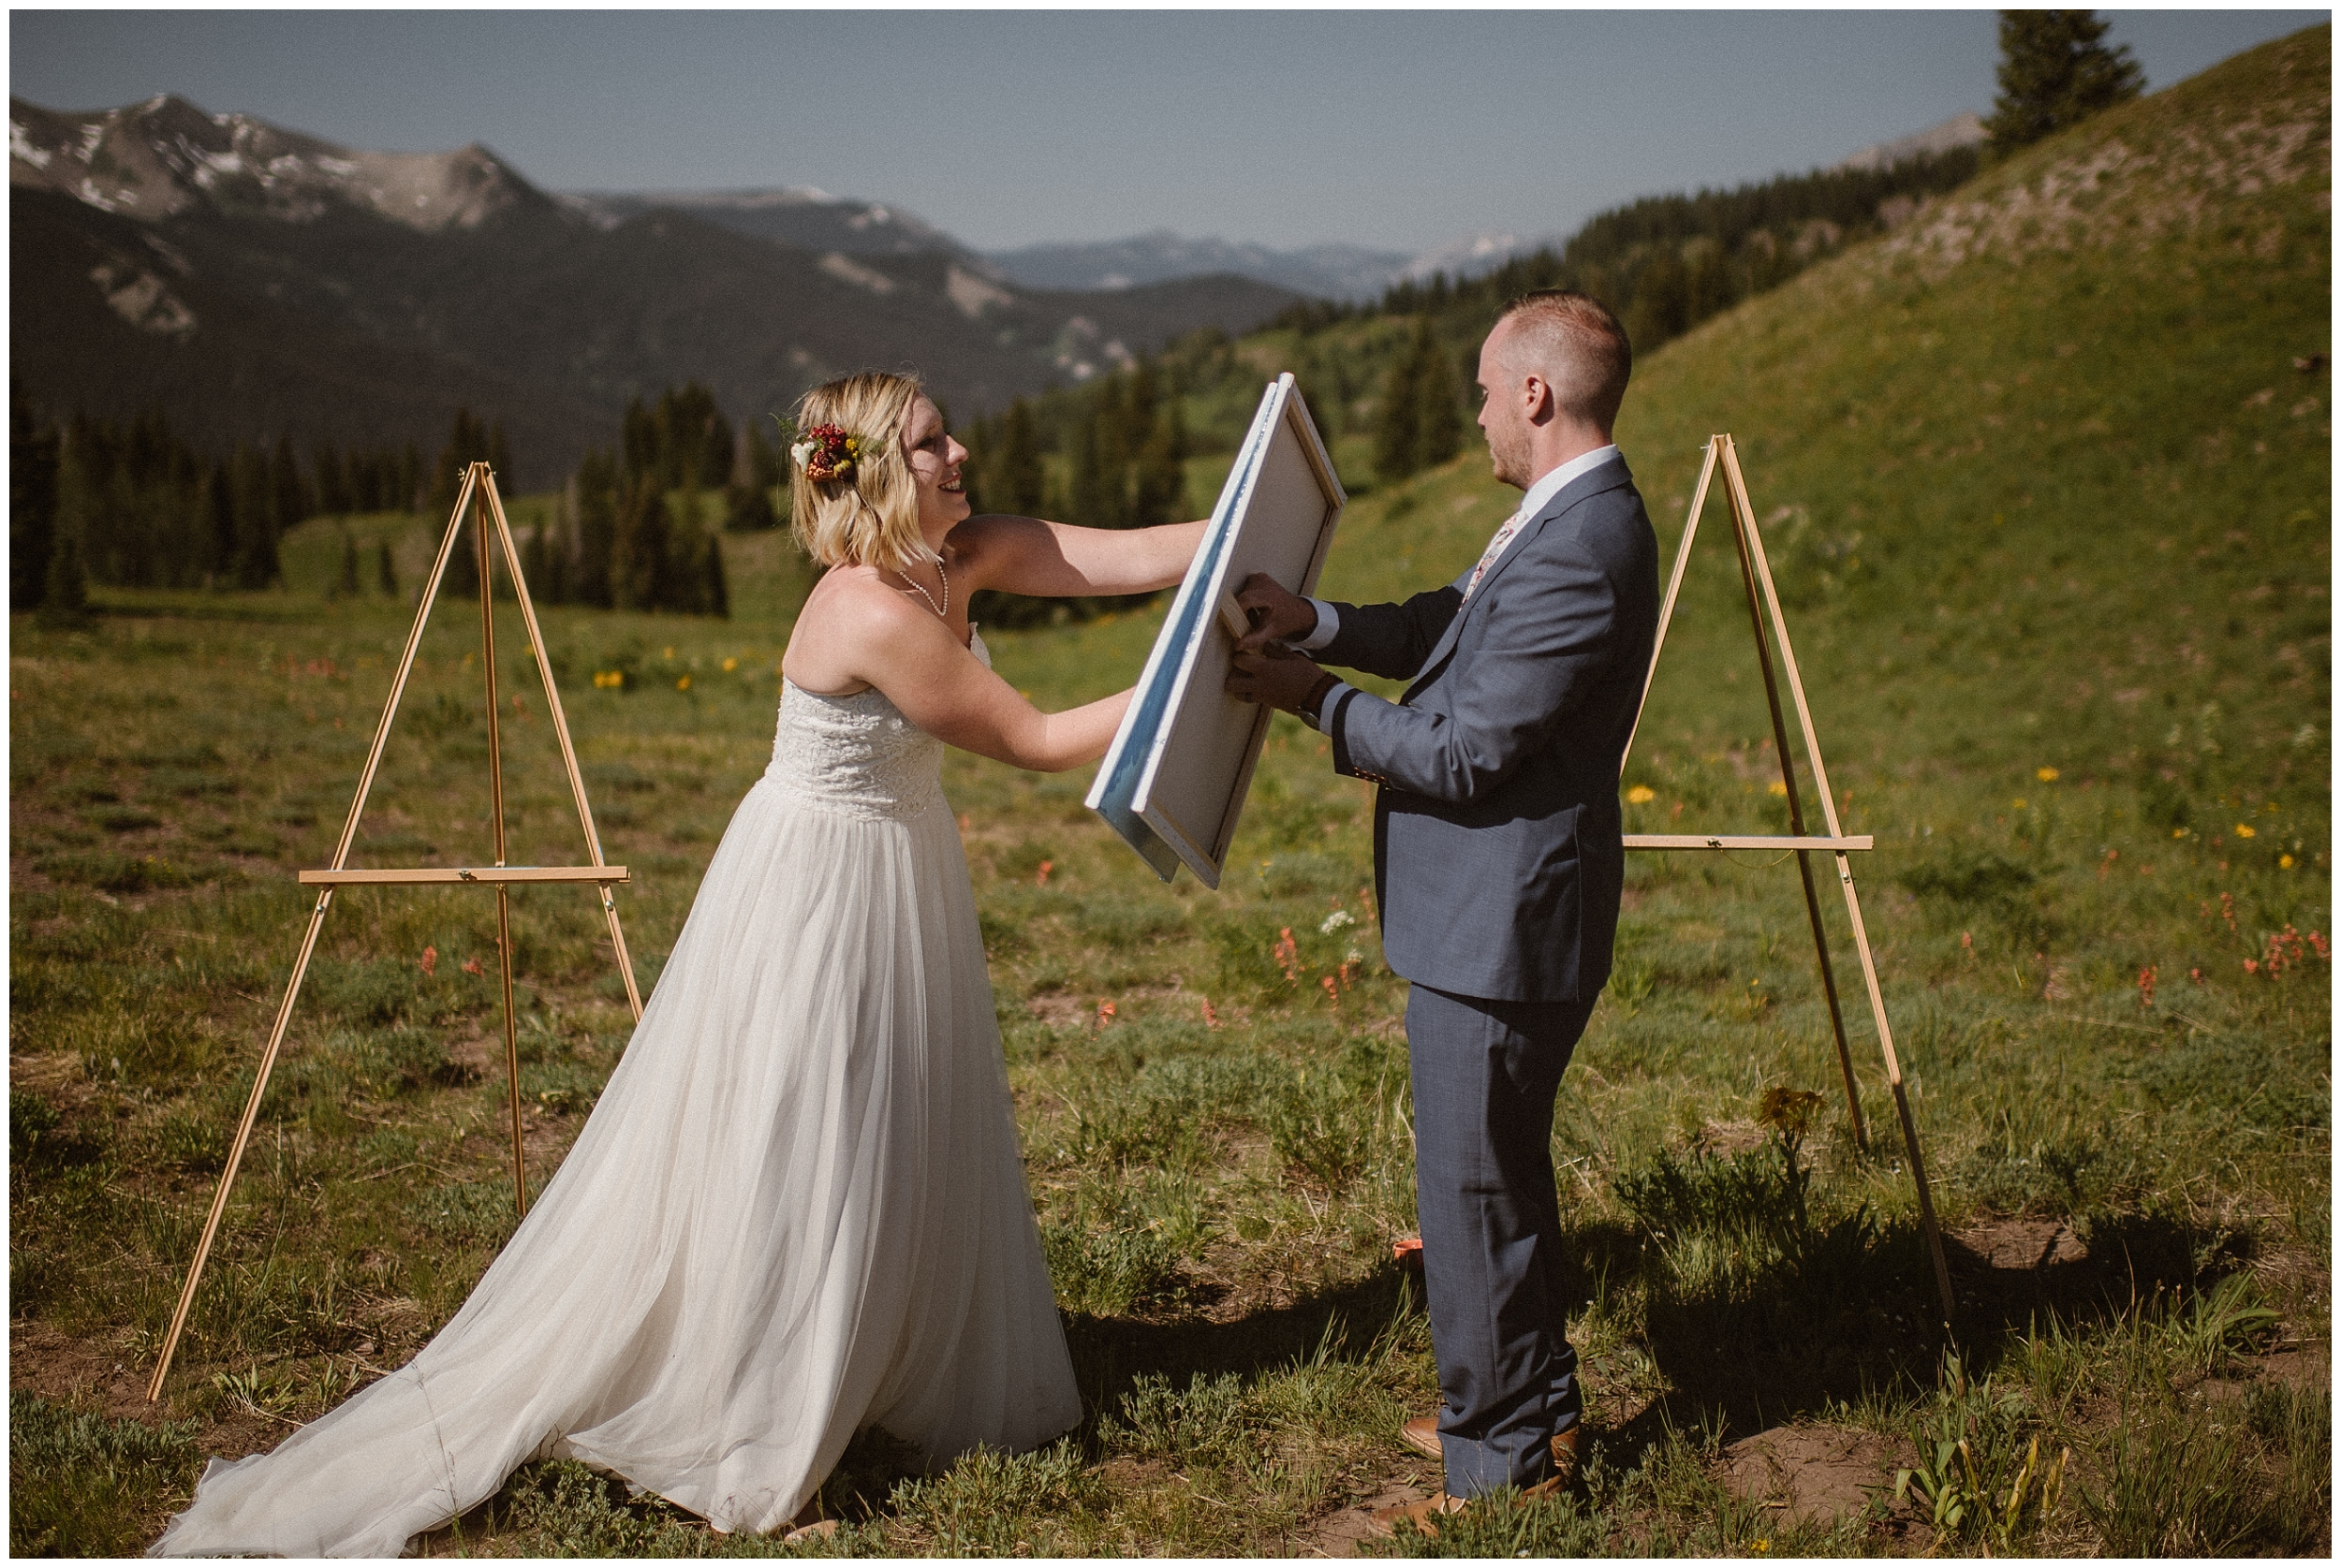 A couple rubs together two easels on their wedding day as a part of their non-traditional wedding ceremony. This commitment ceremony symbolizes how the two of them are becoming one on their elopement day.